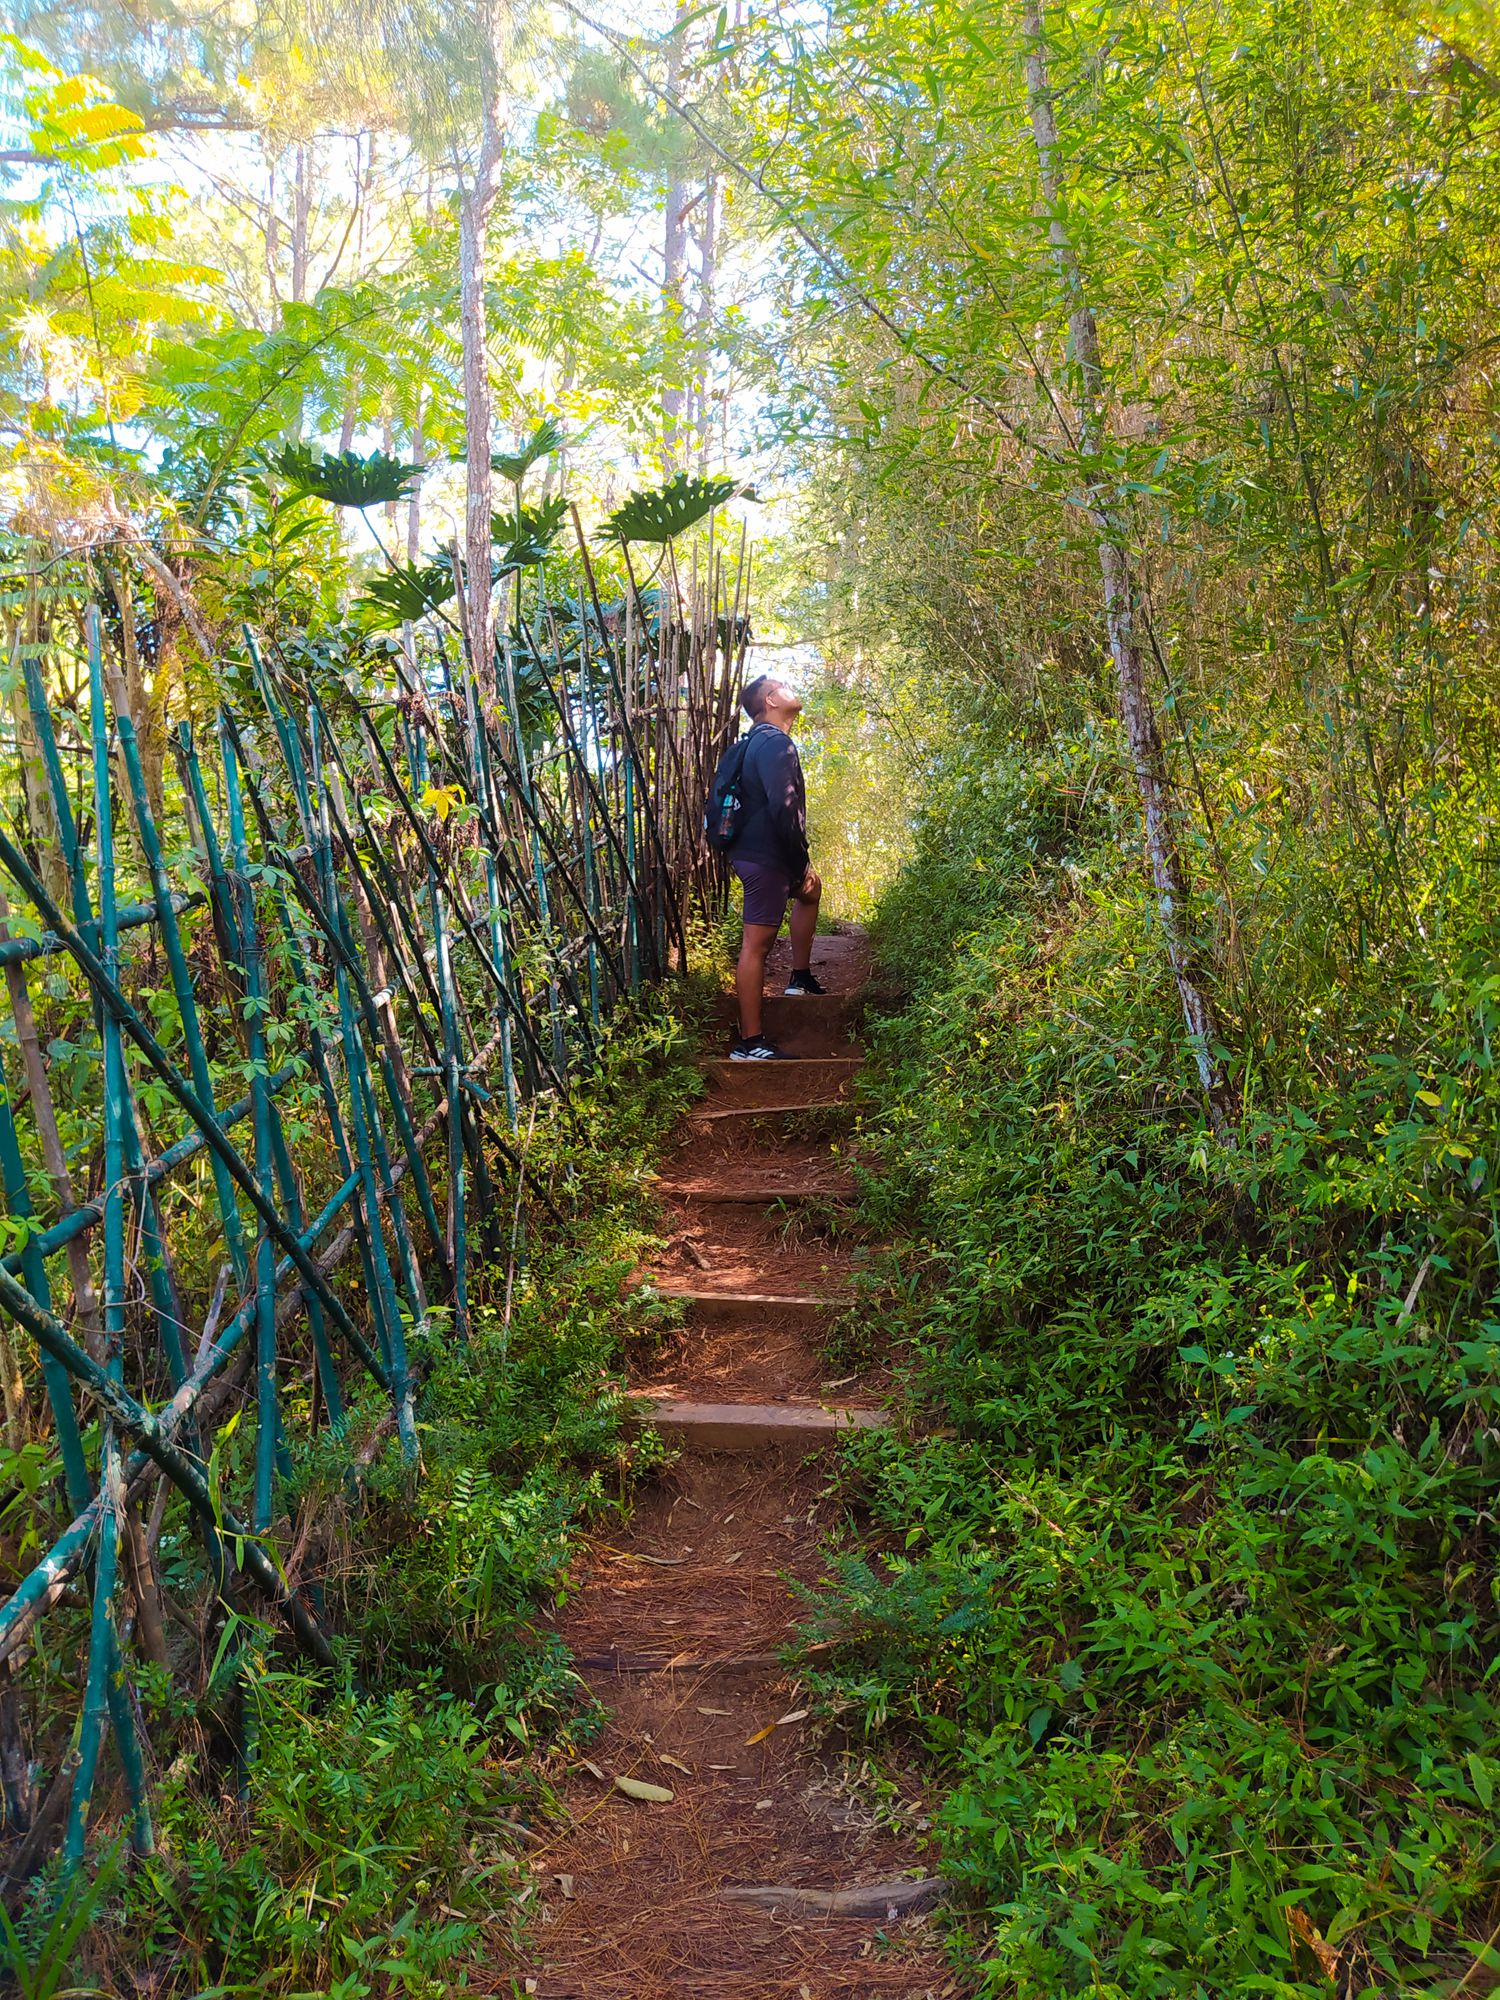 A man standing on dirt steps bounded with a stick fence on one side, and thick vegetation on both sides, somewhere along the Eco-Trail